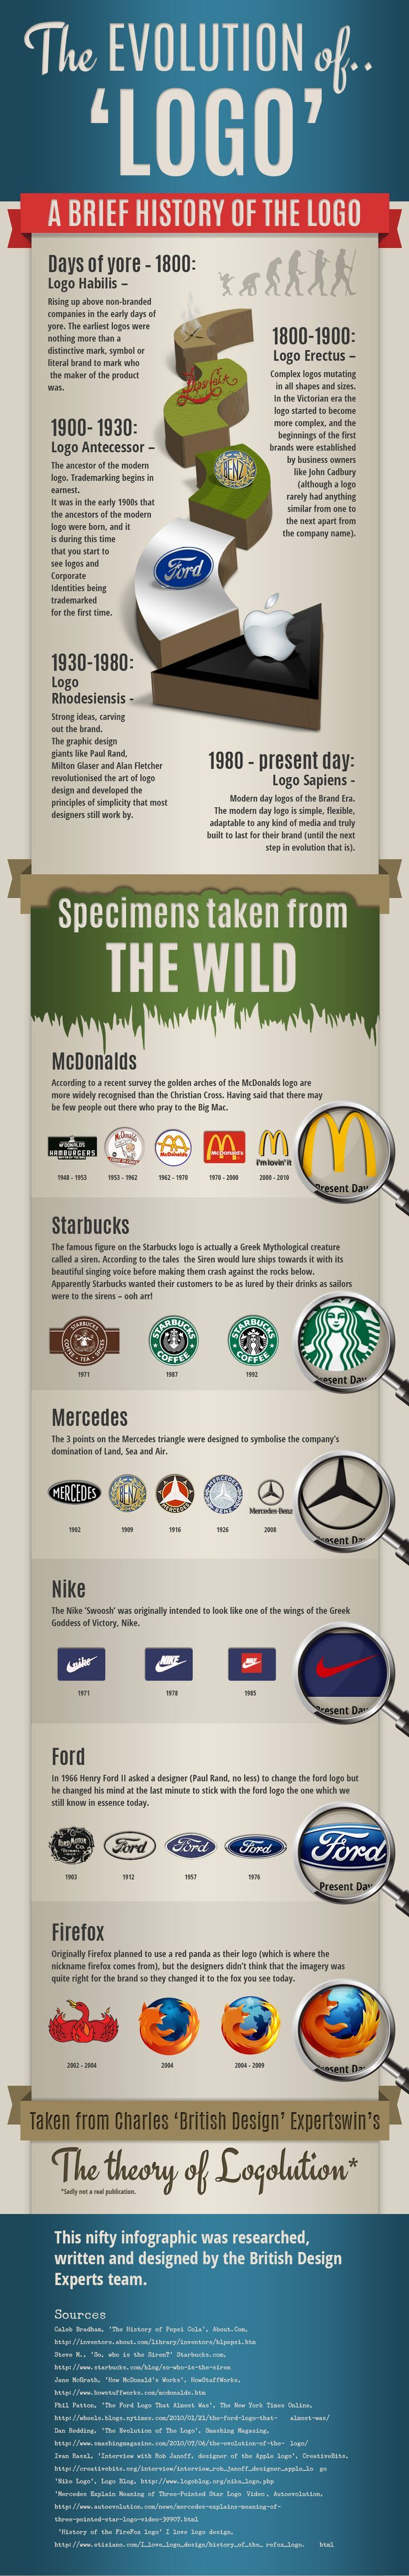 The evolution of Logo #infographic